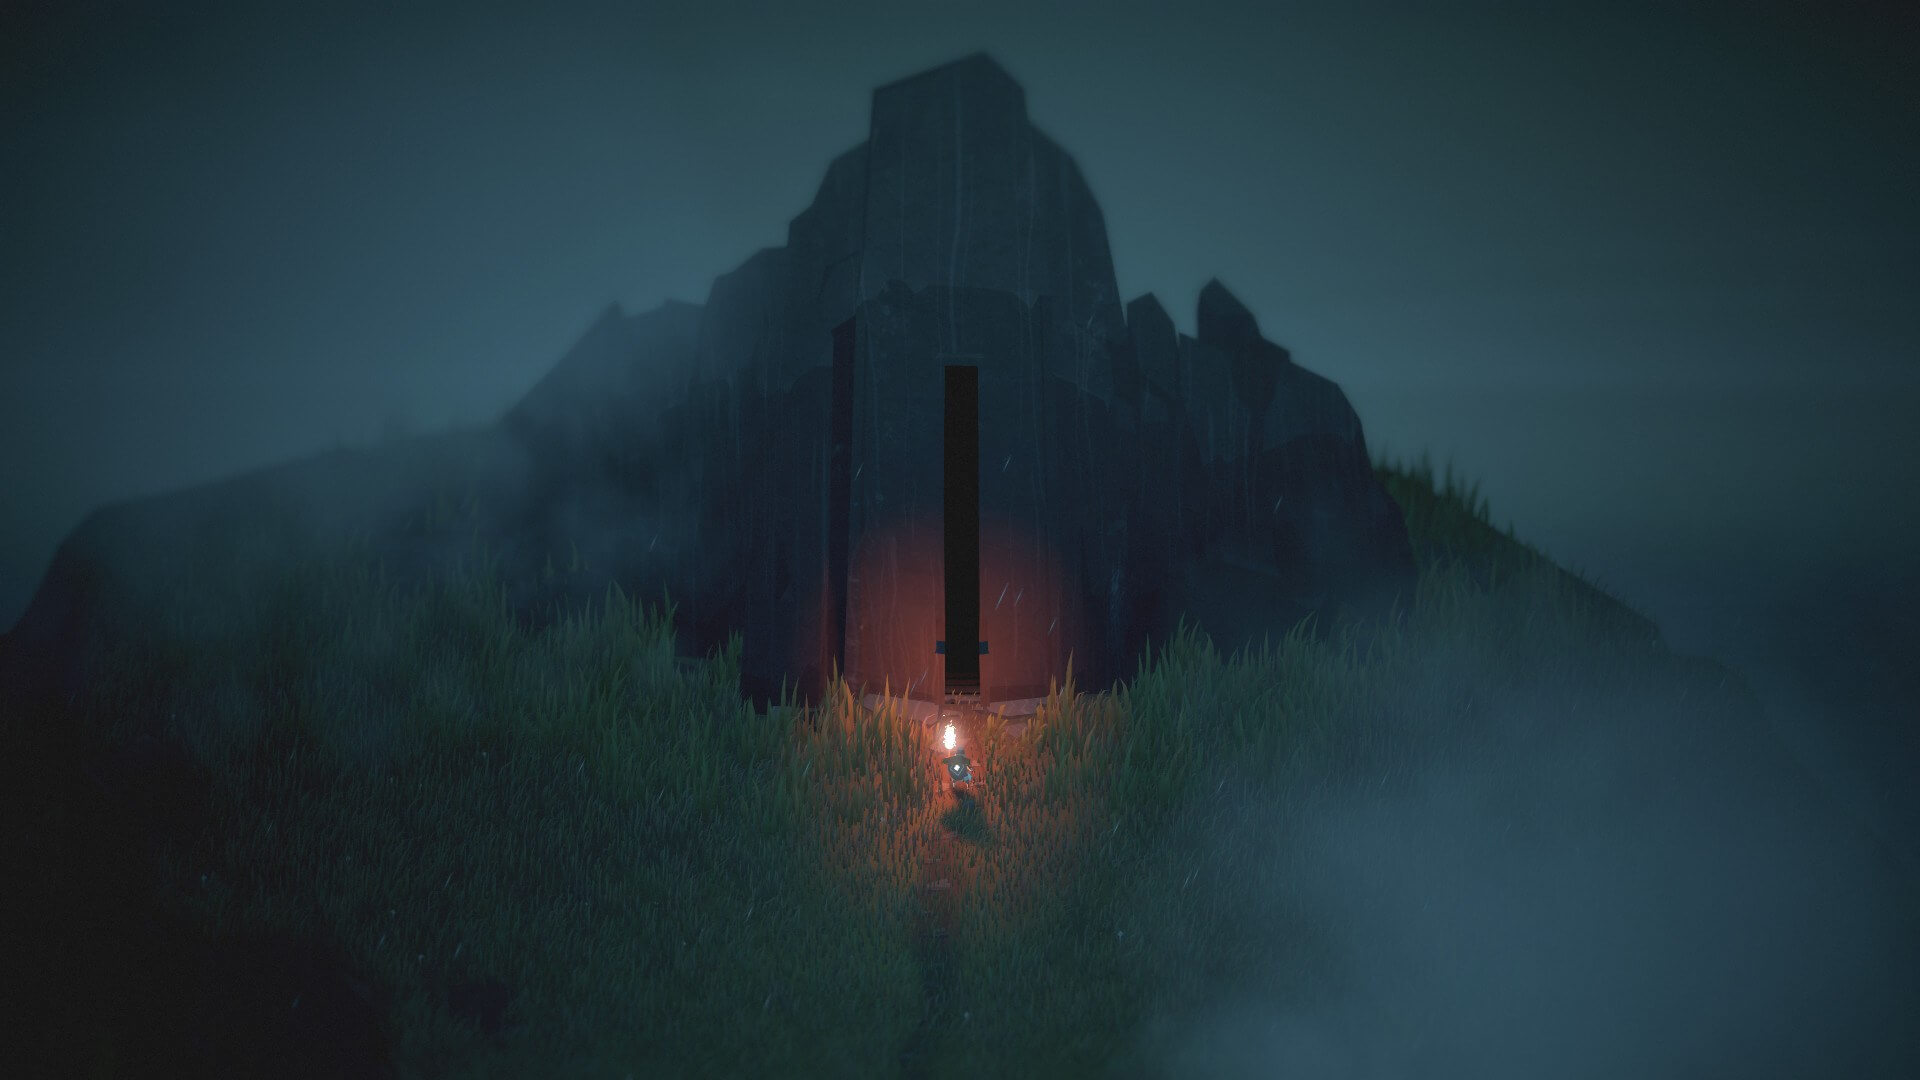 Capybara Games brings Below to the PS4 with an easier 'Explore Mode'